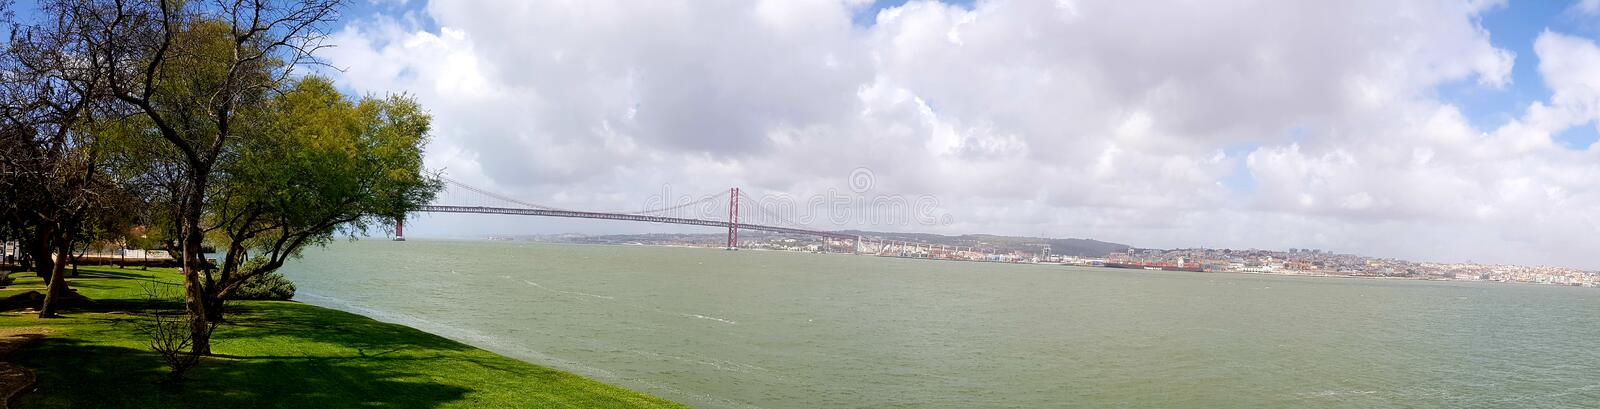 25th April Bridge in Lisbon stock image